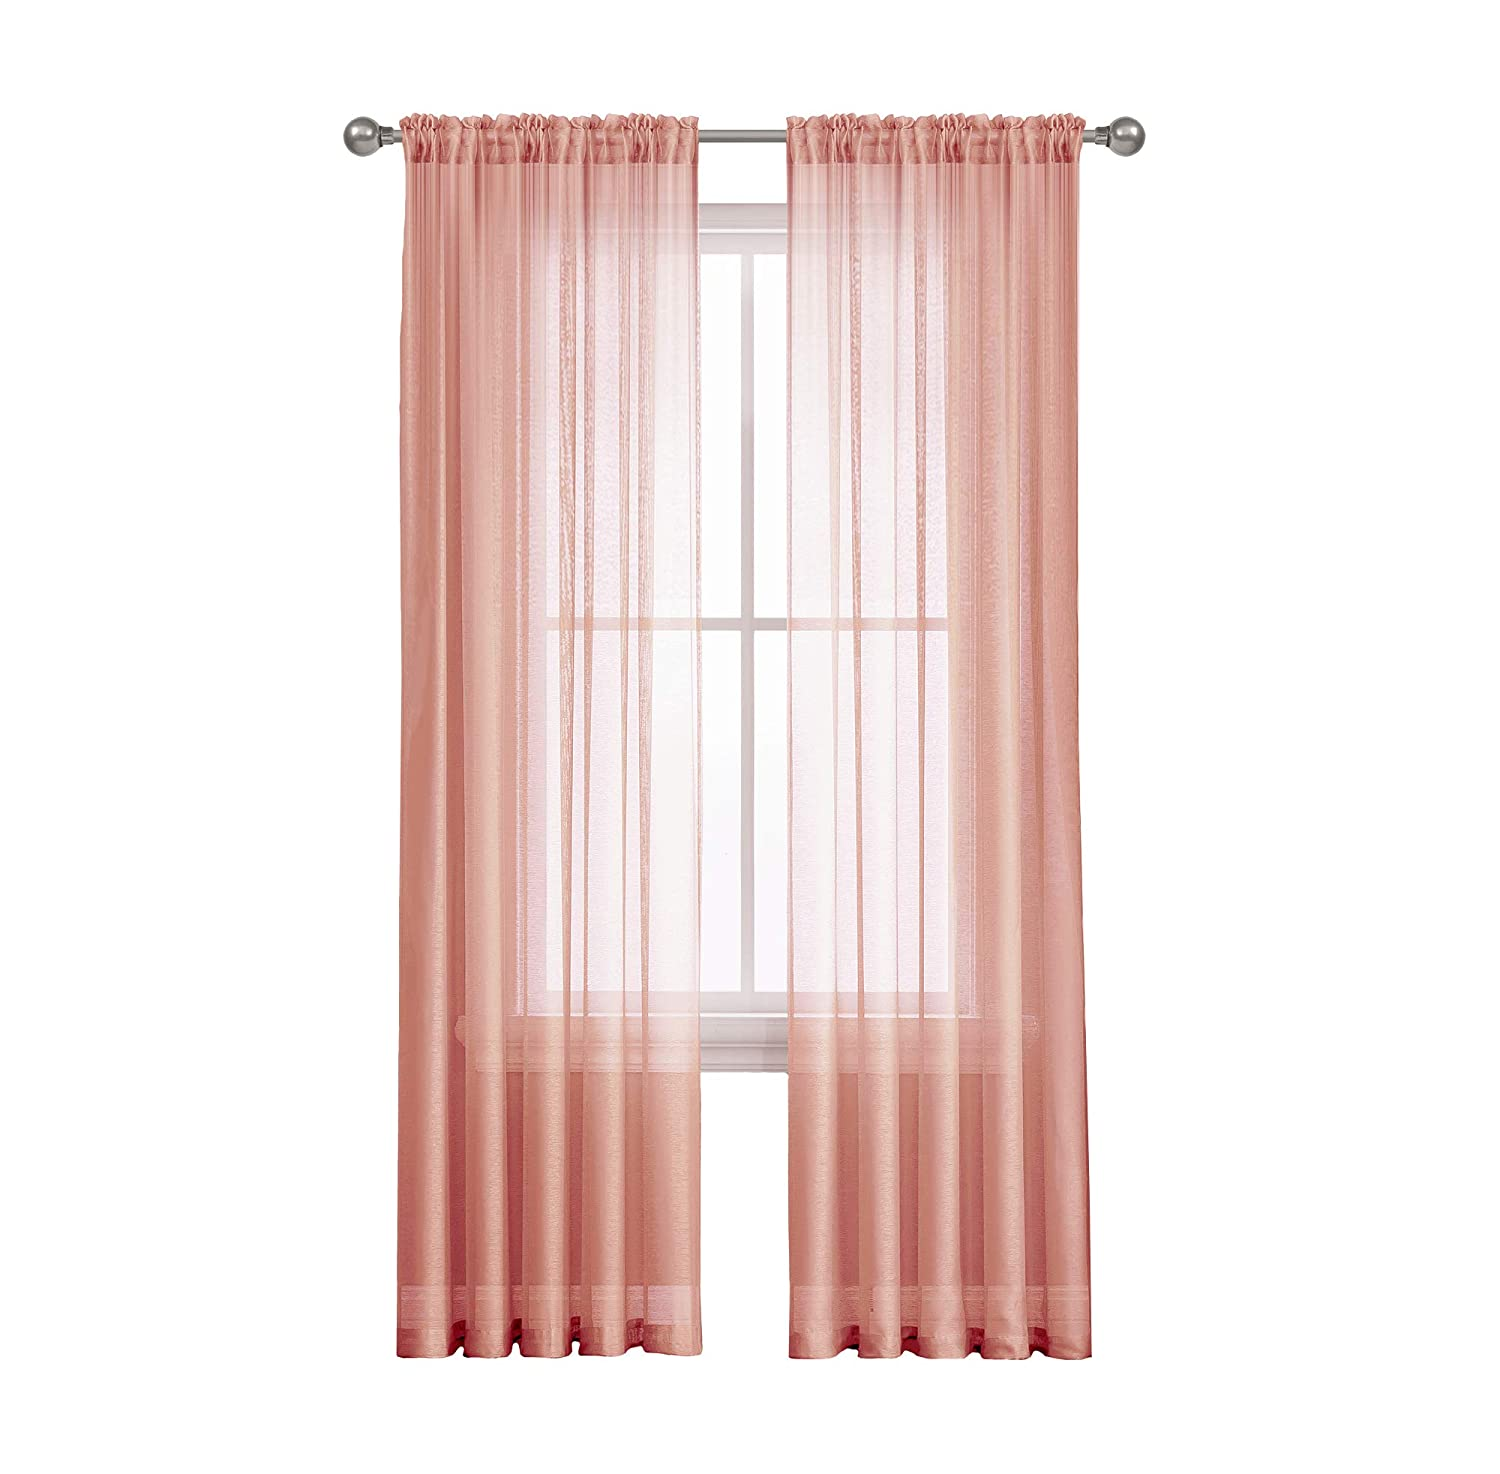 "Jane - Rod Pocket Semi-Sheer Curtains - 2 Pieces - Total Size 108"" W x 63"" L - Natural Light Flow Material Durable - for Bedroom - Living Room - Kid"